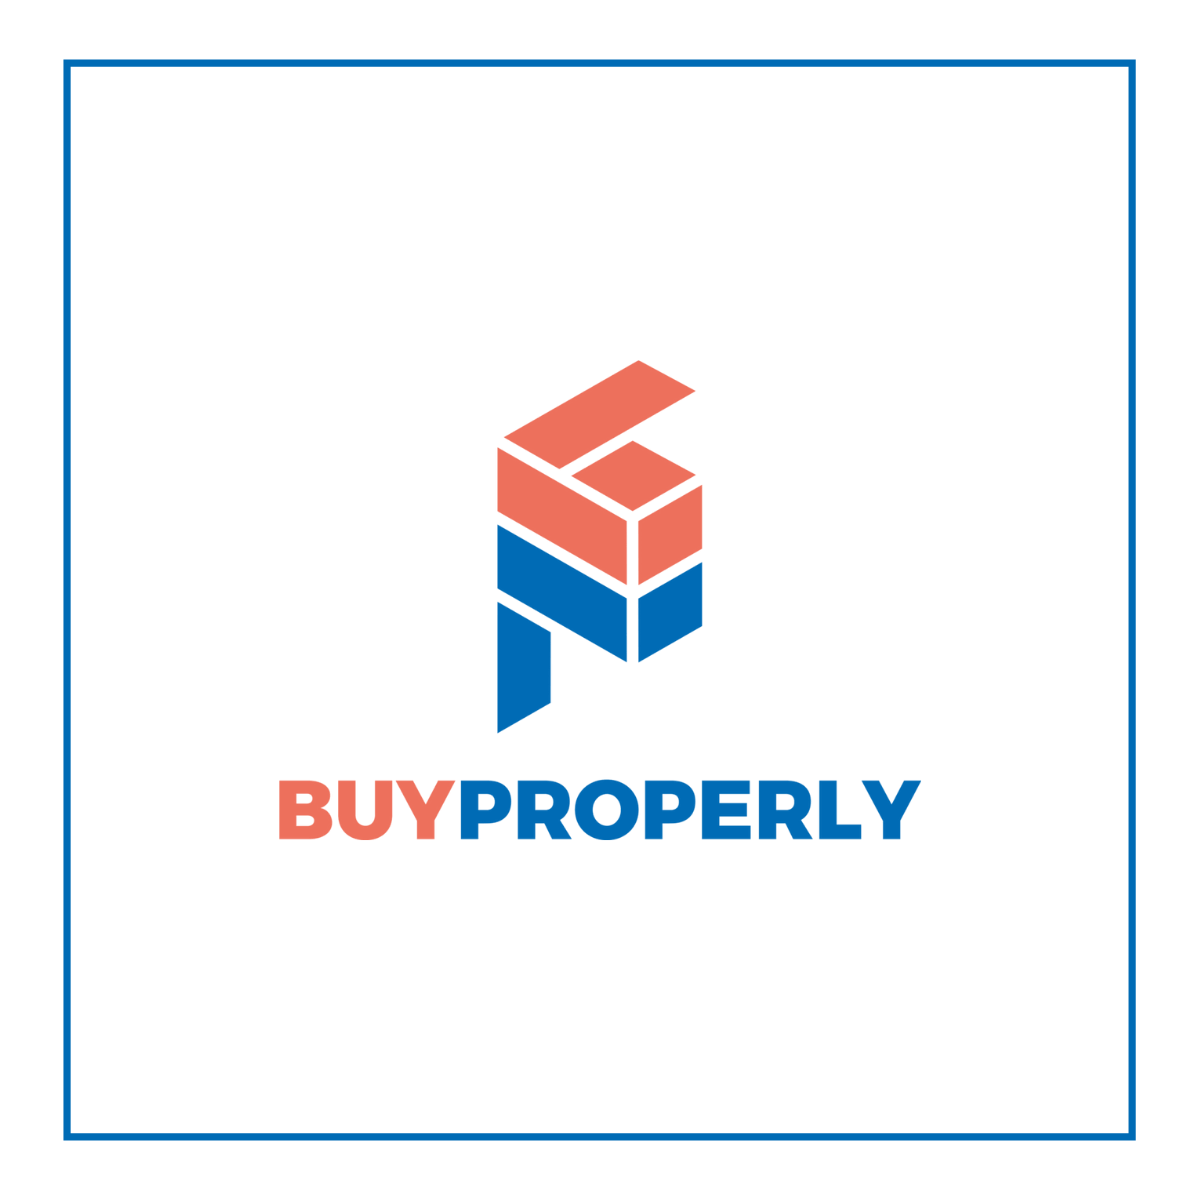 BuyProperly Review: Investing In Real Estate To Grow Your Wealth